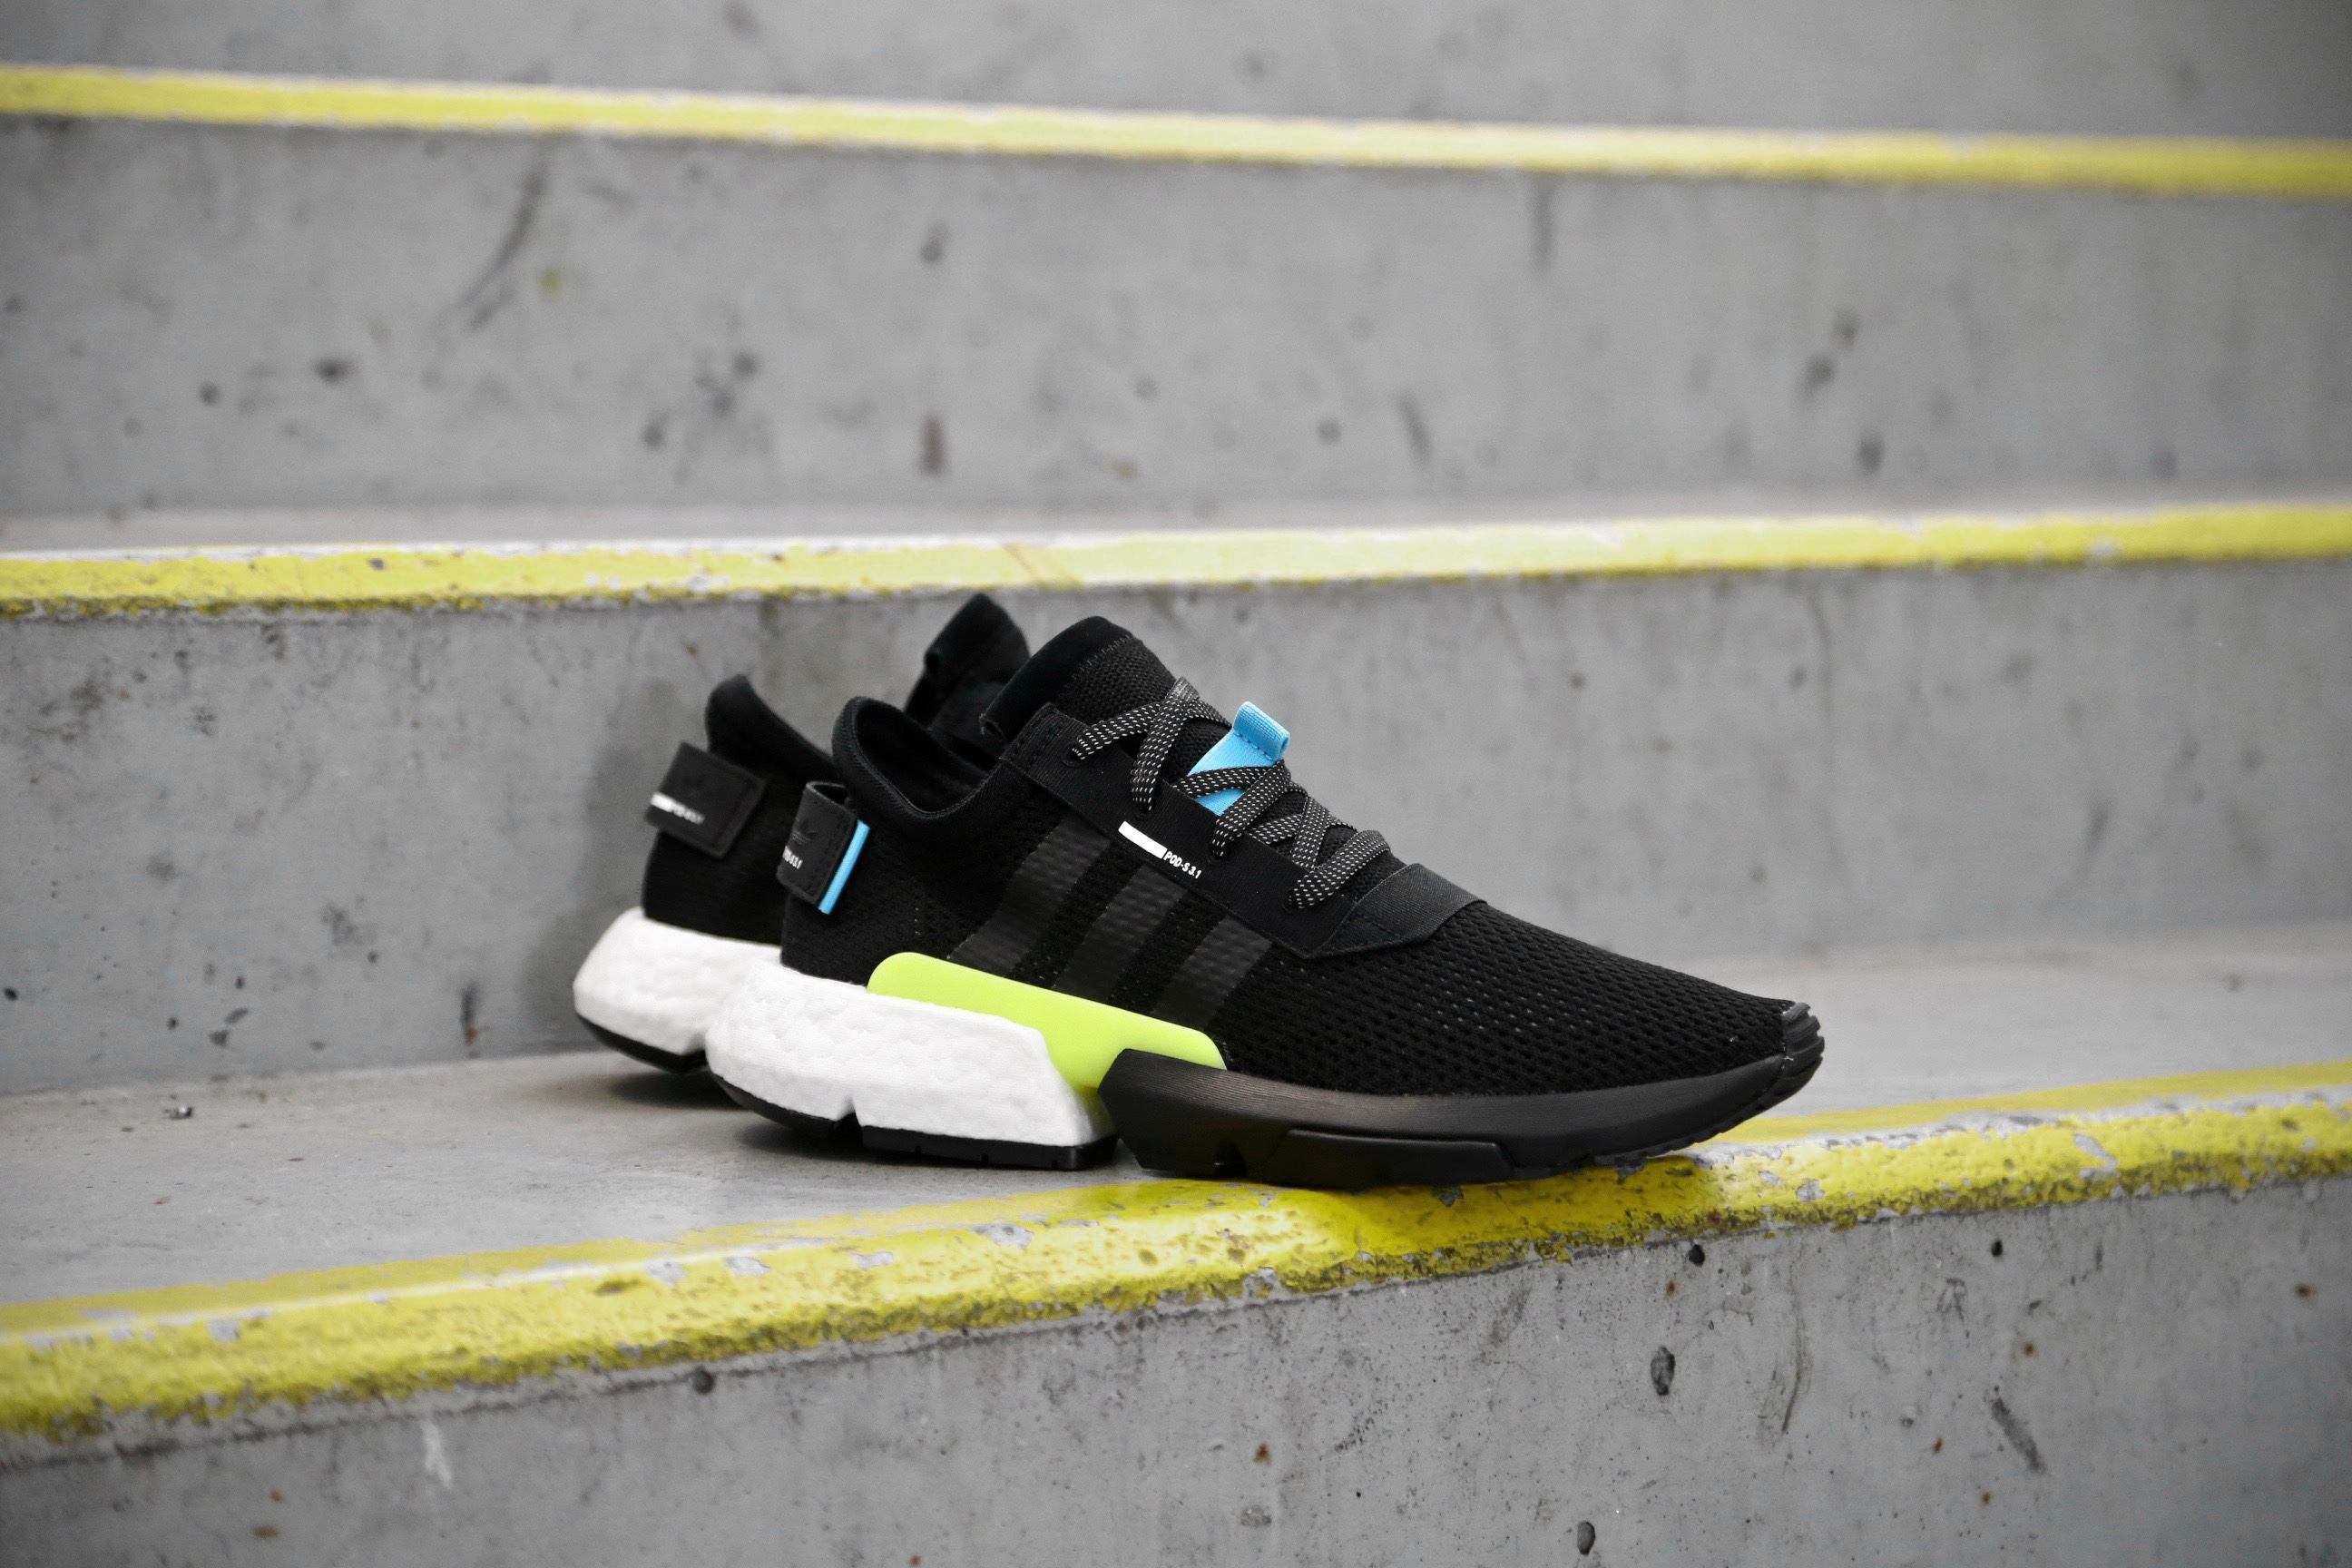 217b809ac98f69 adidas Originals POD-S3.1 – Core Black / Ftwr White – STASP